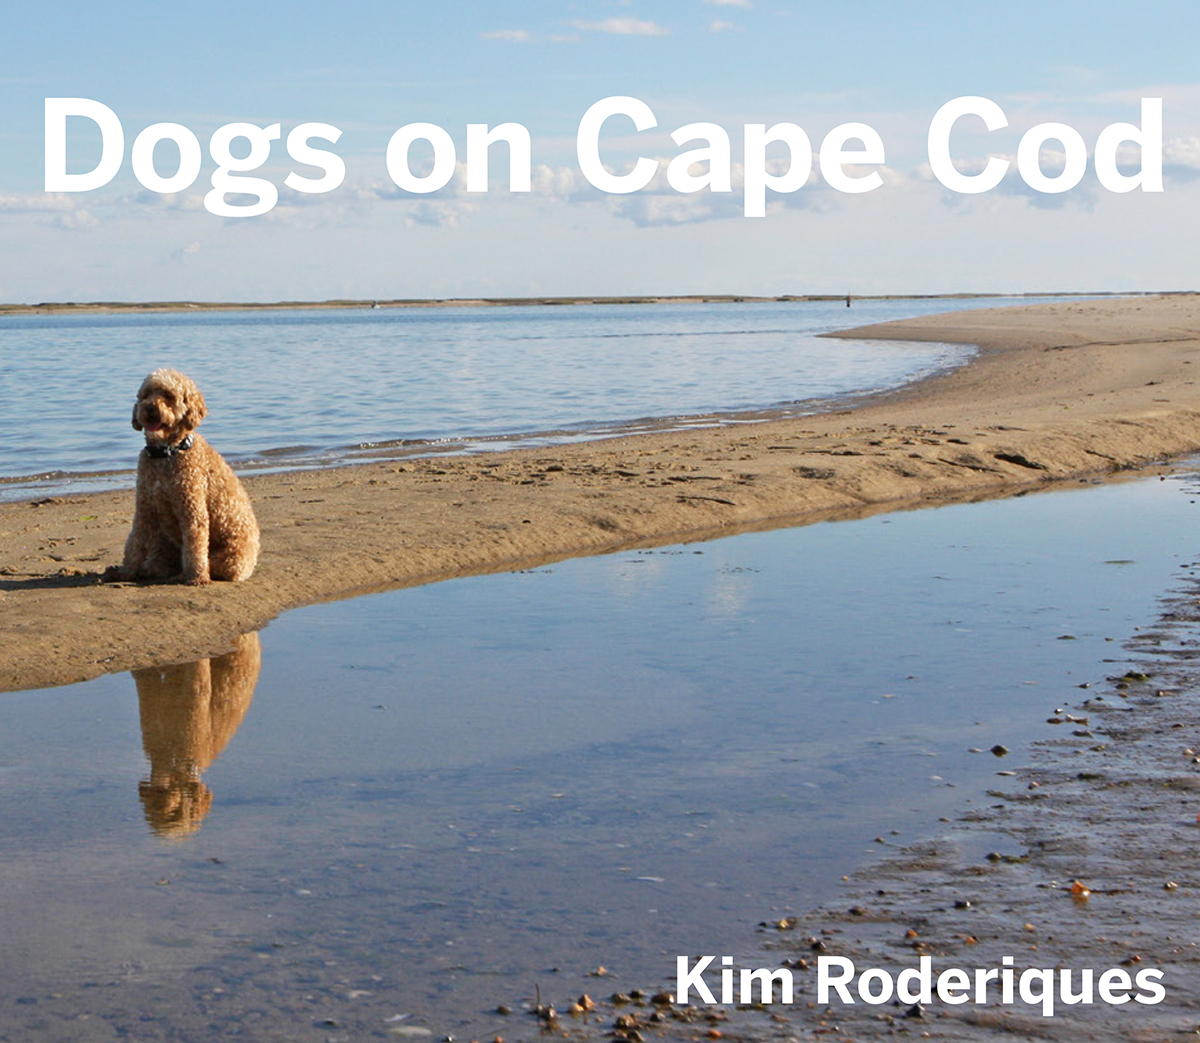 dogs on cape cod book cover